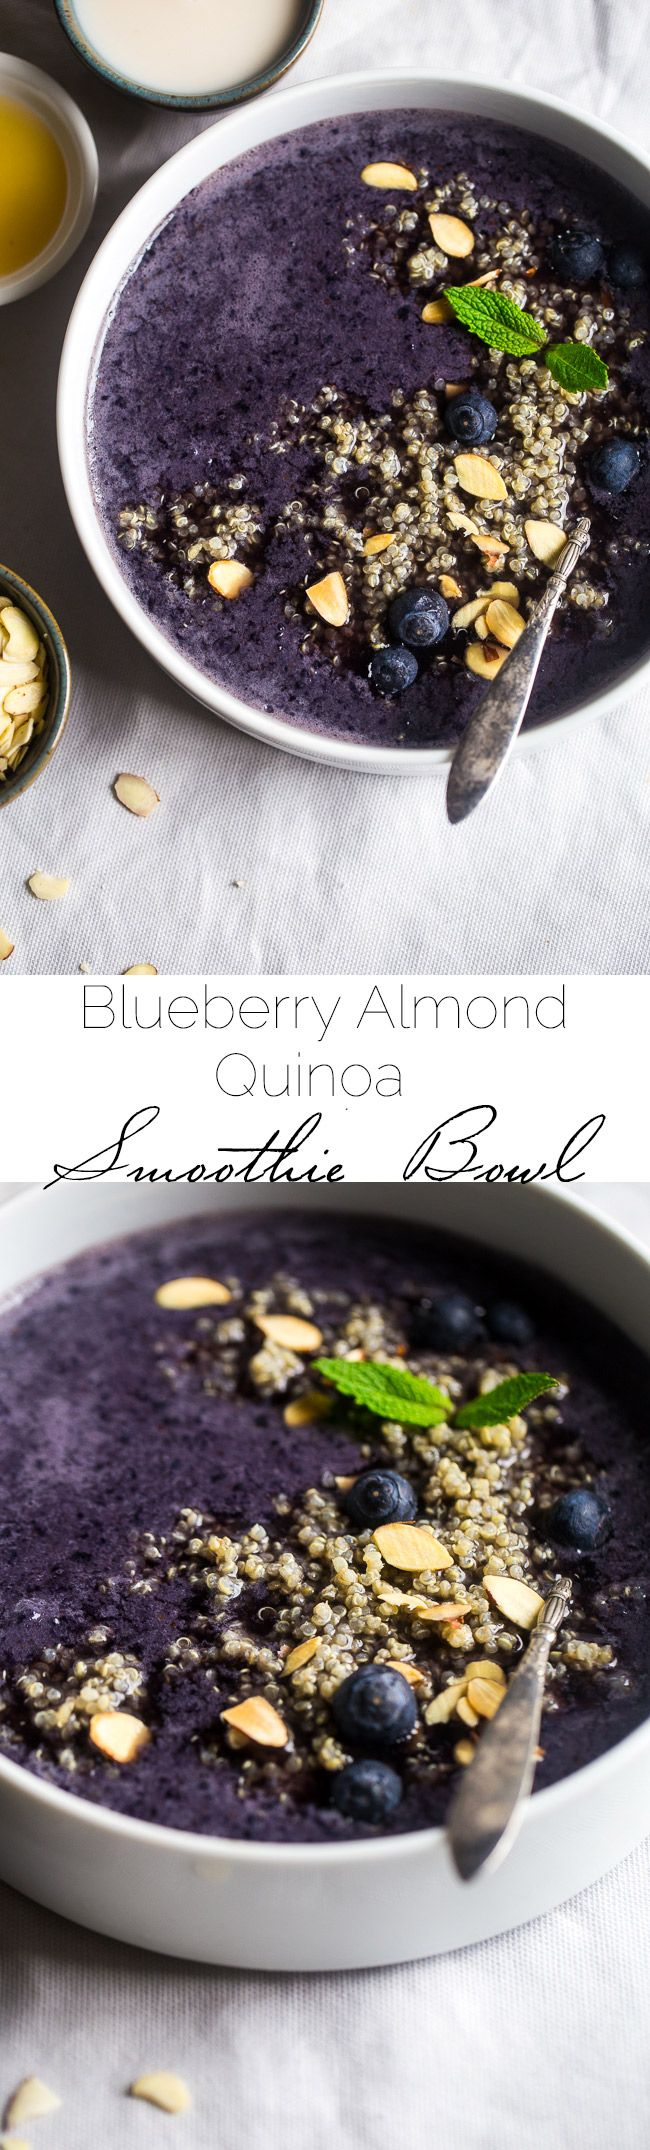 Blueberry Almond Breakfast Quinoa Smoothie Bowl – Quinoa made with vanilla almond milk and mixed with a blueberry smoothie for a quick and easy breakfast that is healthy, dairy/gluten free and loaded with superfoods!   Foodfaithfitness.com   @FoodFaithFit #ad